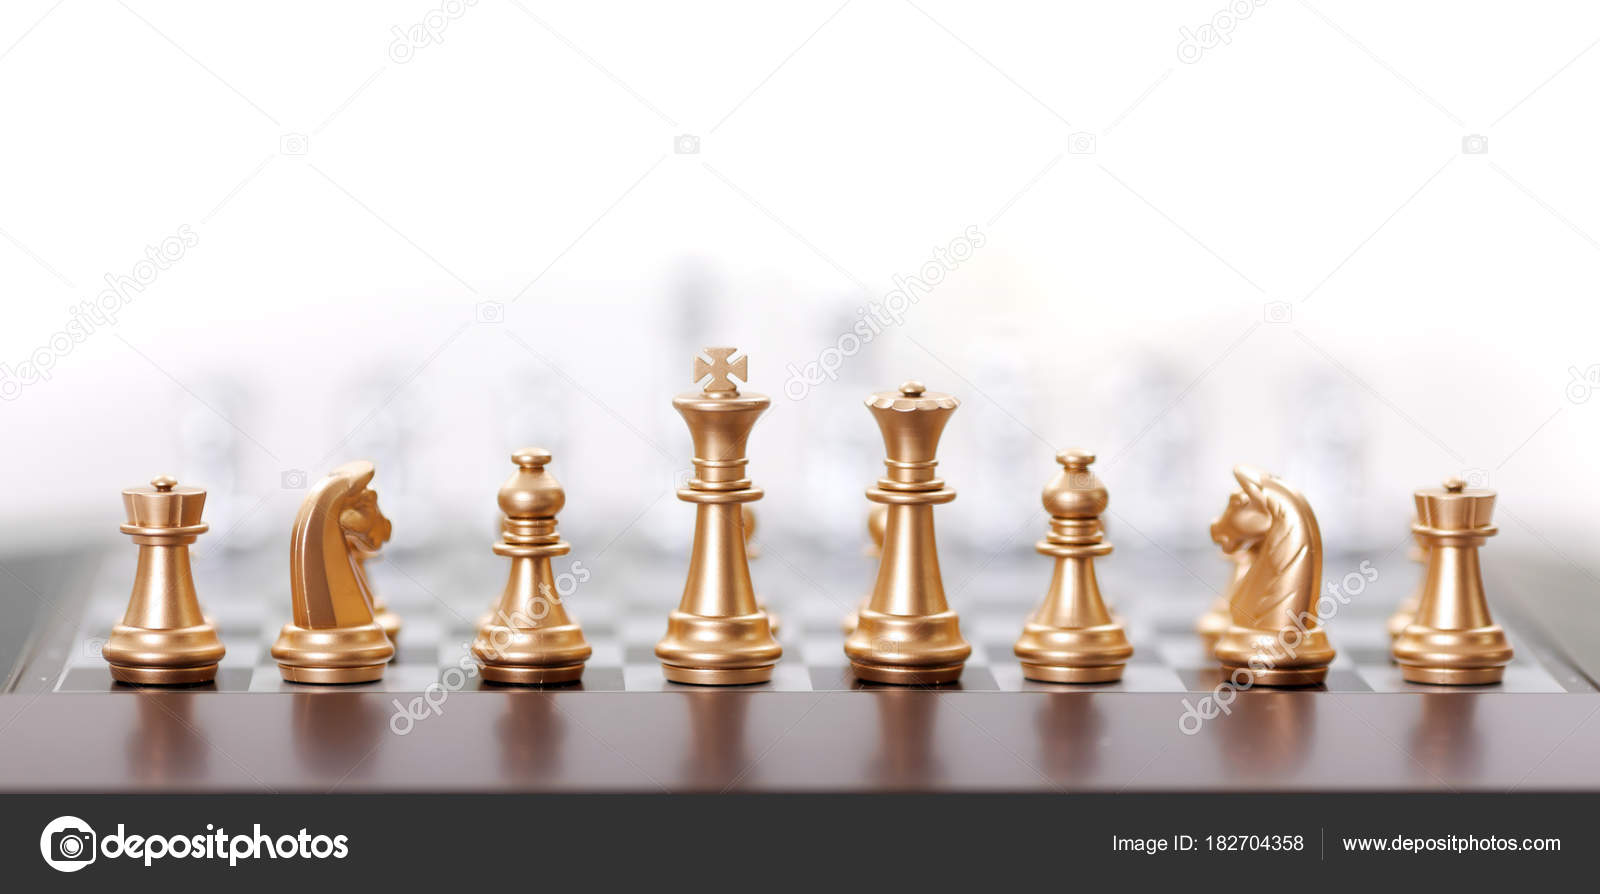 Gold Chess Pieces Golden Chess Pieces Stock Photo Erierika 182704358